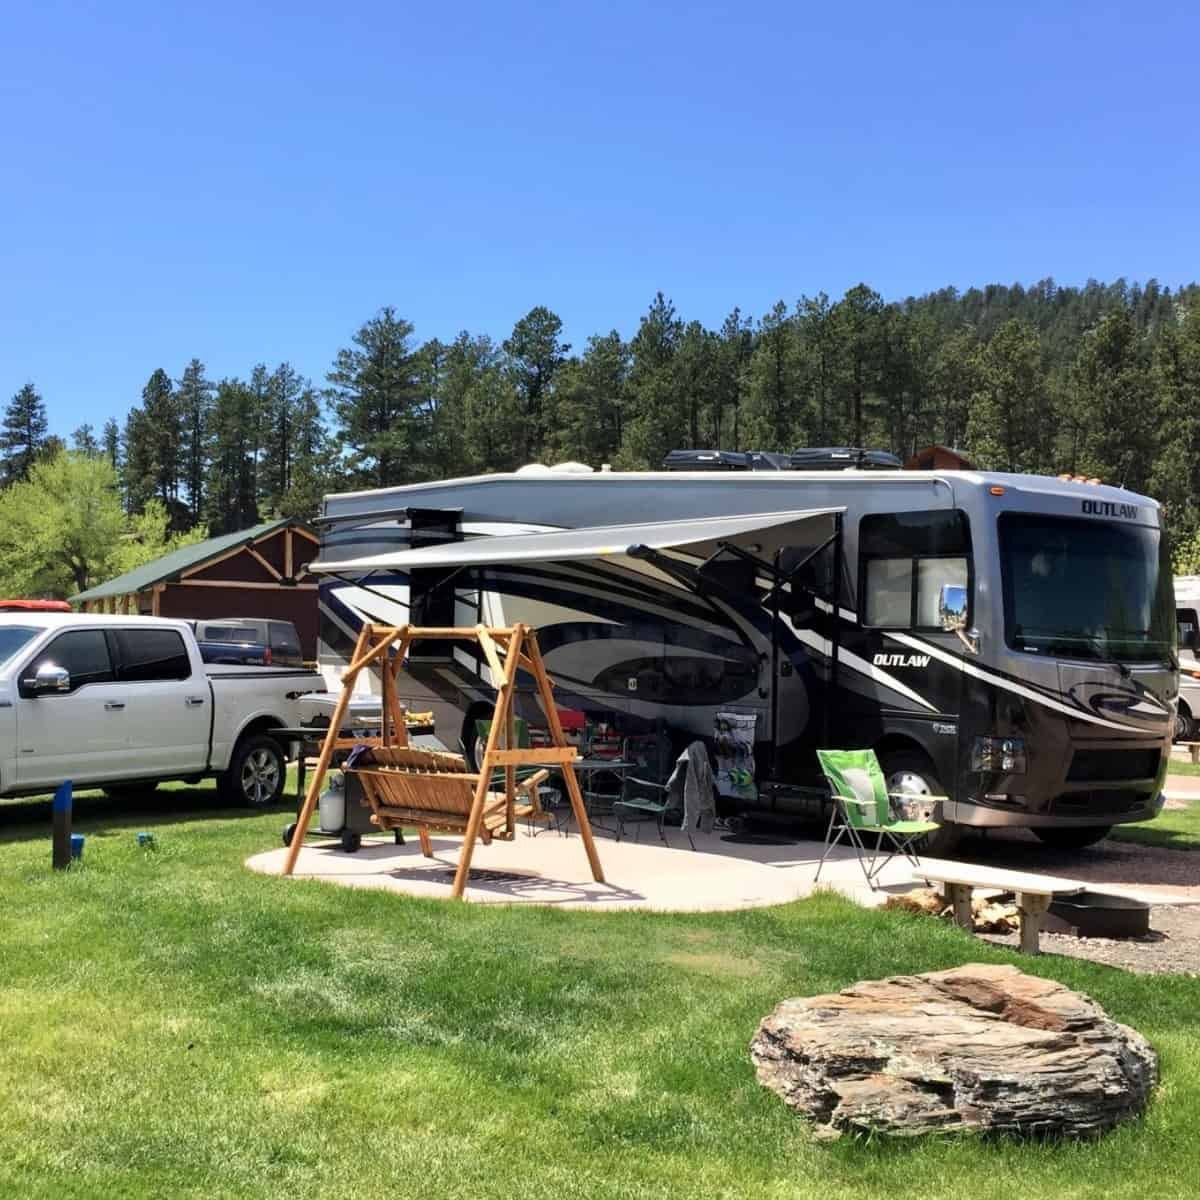 Feature image of a class A motorhome and the surrounding campsite that has been set up with a firepit, table, chairs, grill, rug, and other items.